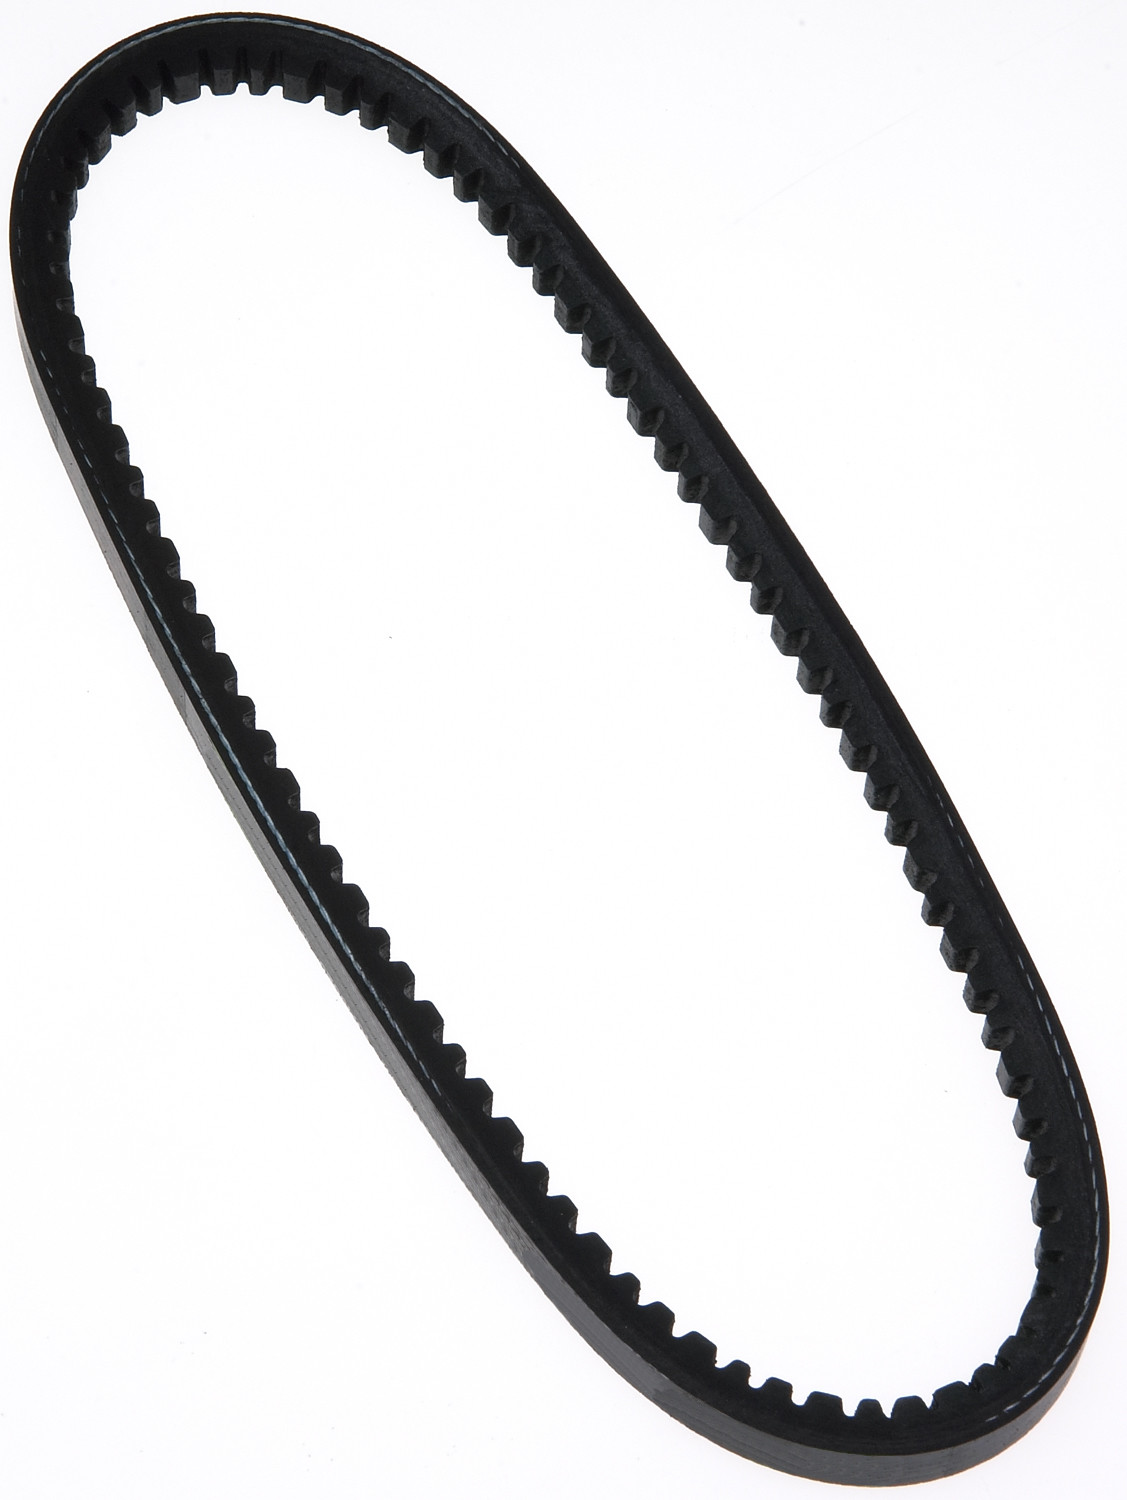 ROADMAX - High Capacity V-belt(standard) - RMX 17385AP